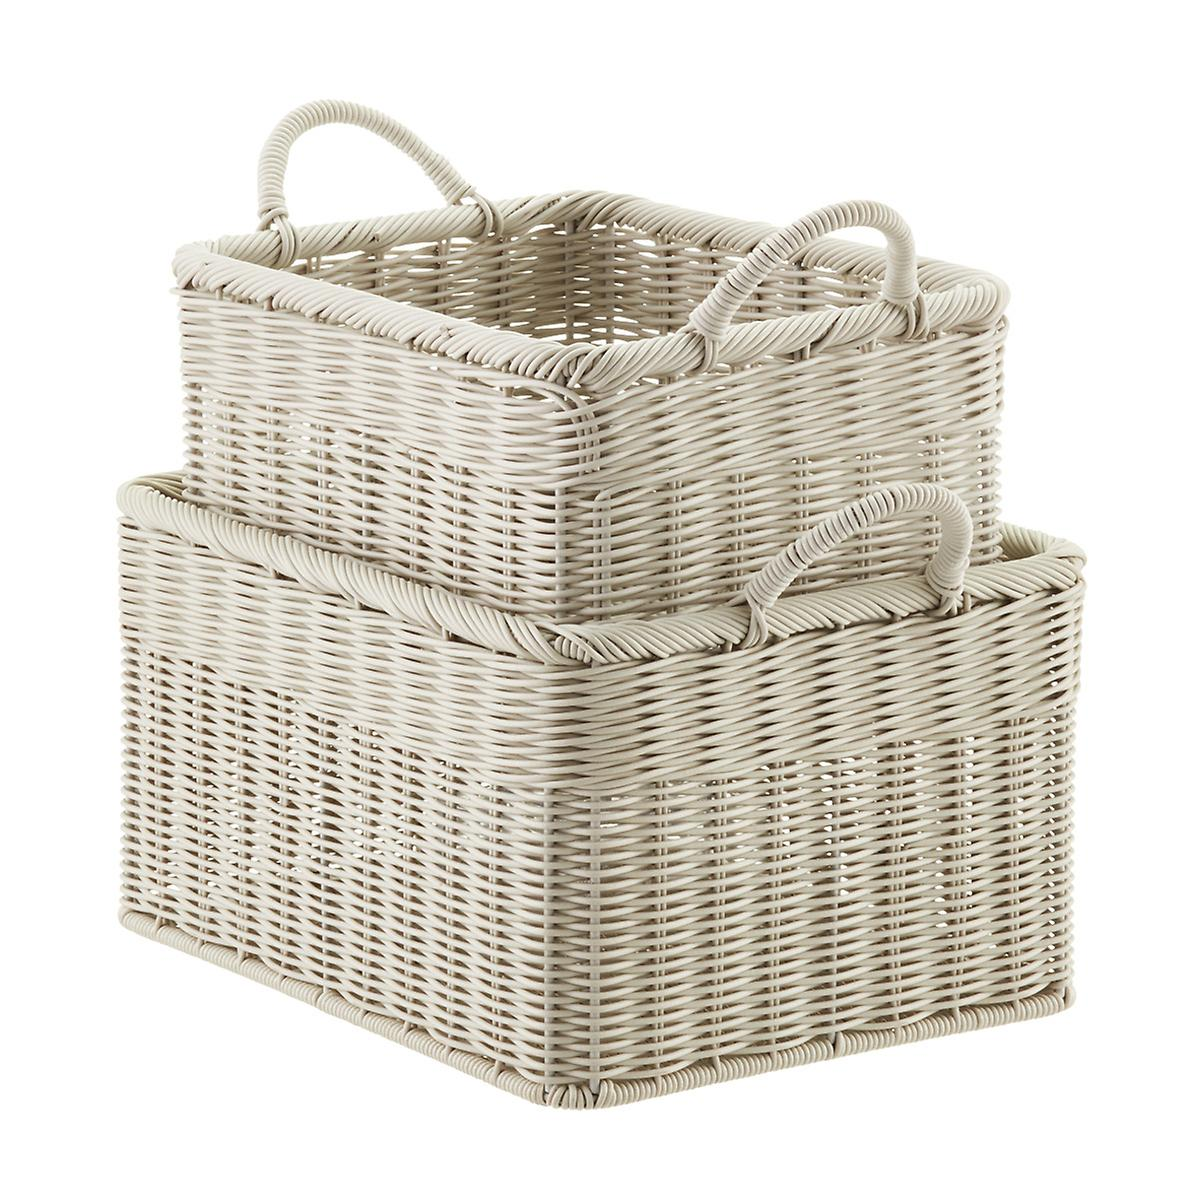 We have tons of woven storage bins so that you can find what you are looking for.